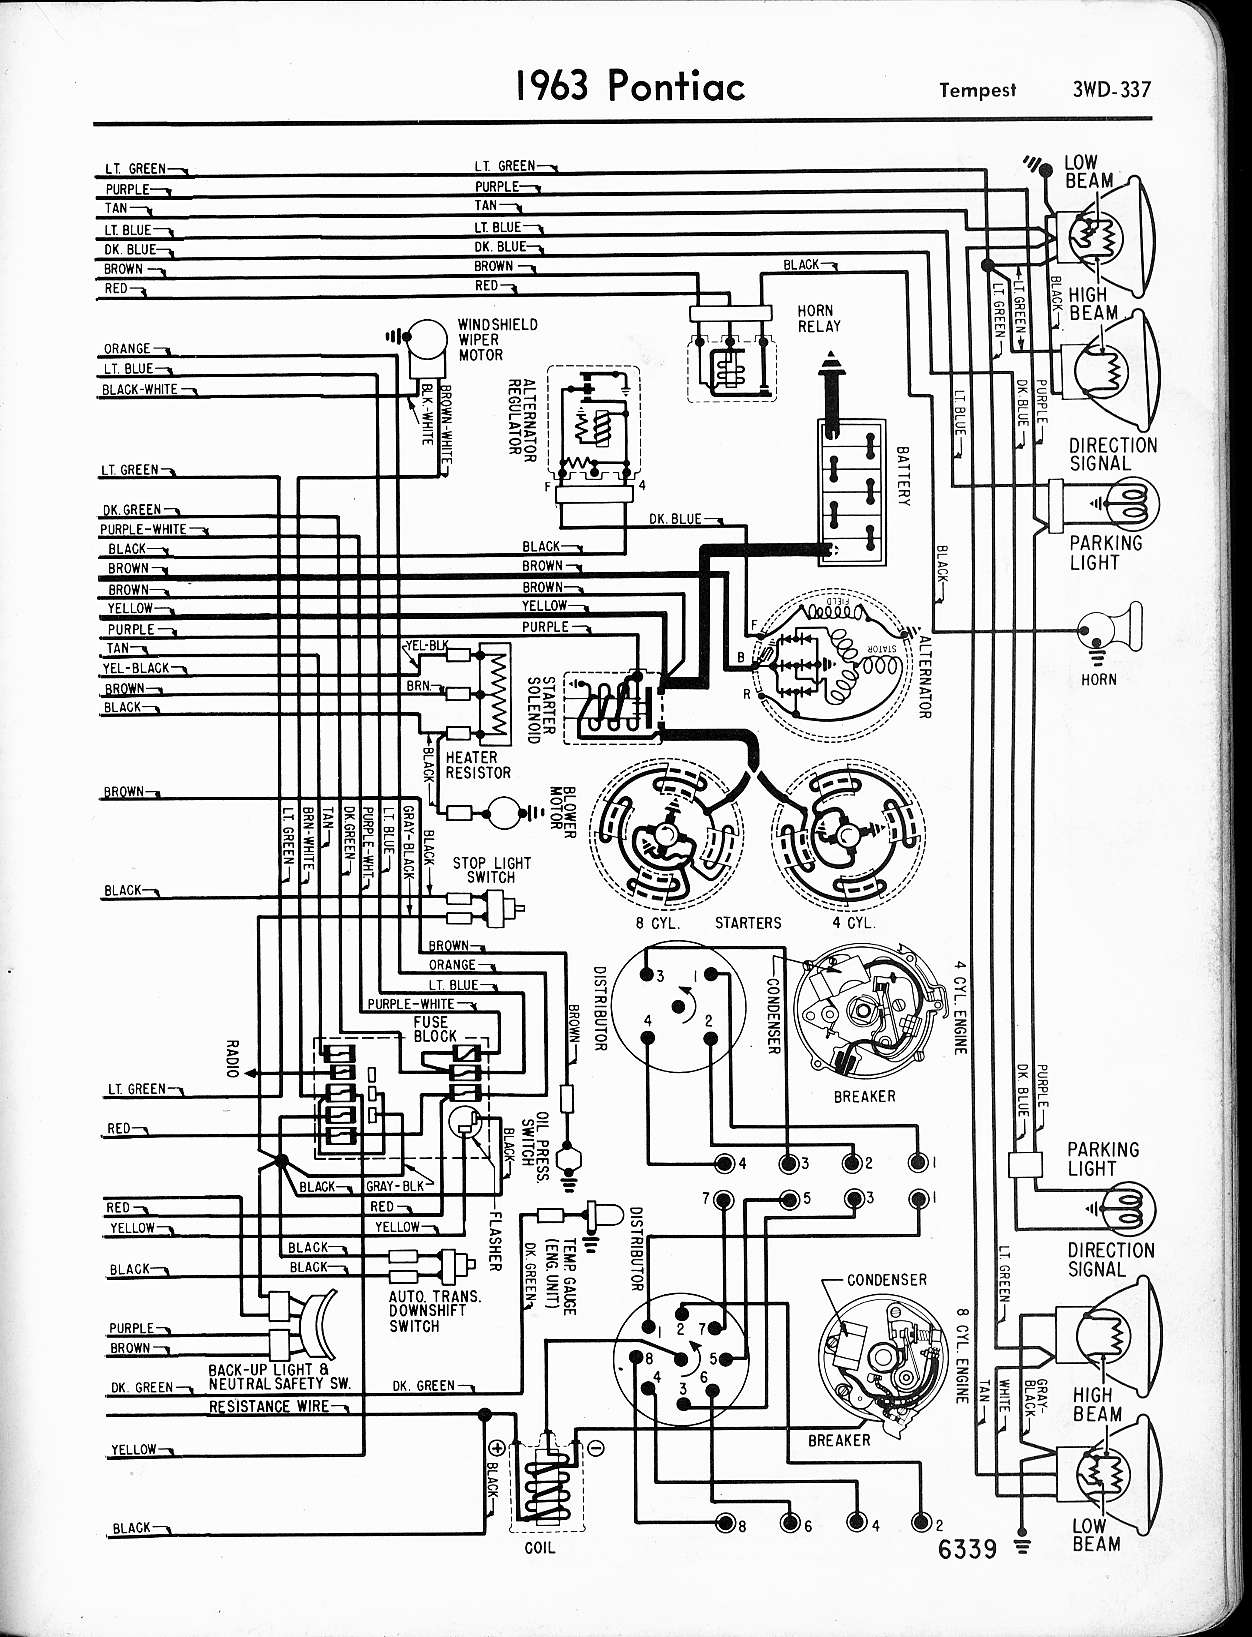 1969 gto wiring harness data wiring diagram schematic 66 GTO Wiring-Diagram 1969 gto best wiring harness wiring diagram 1969 gto green 1969 gto wiring harness